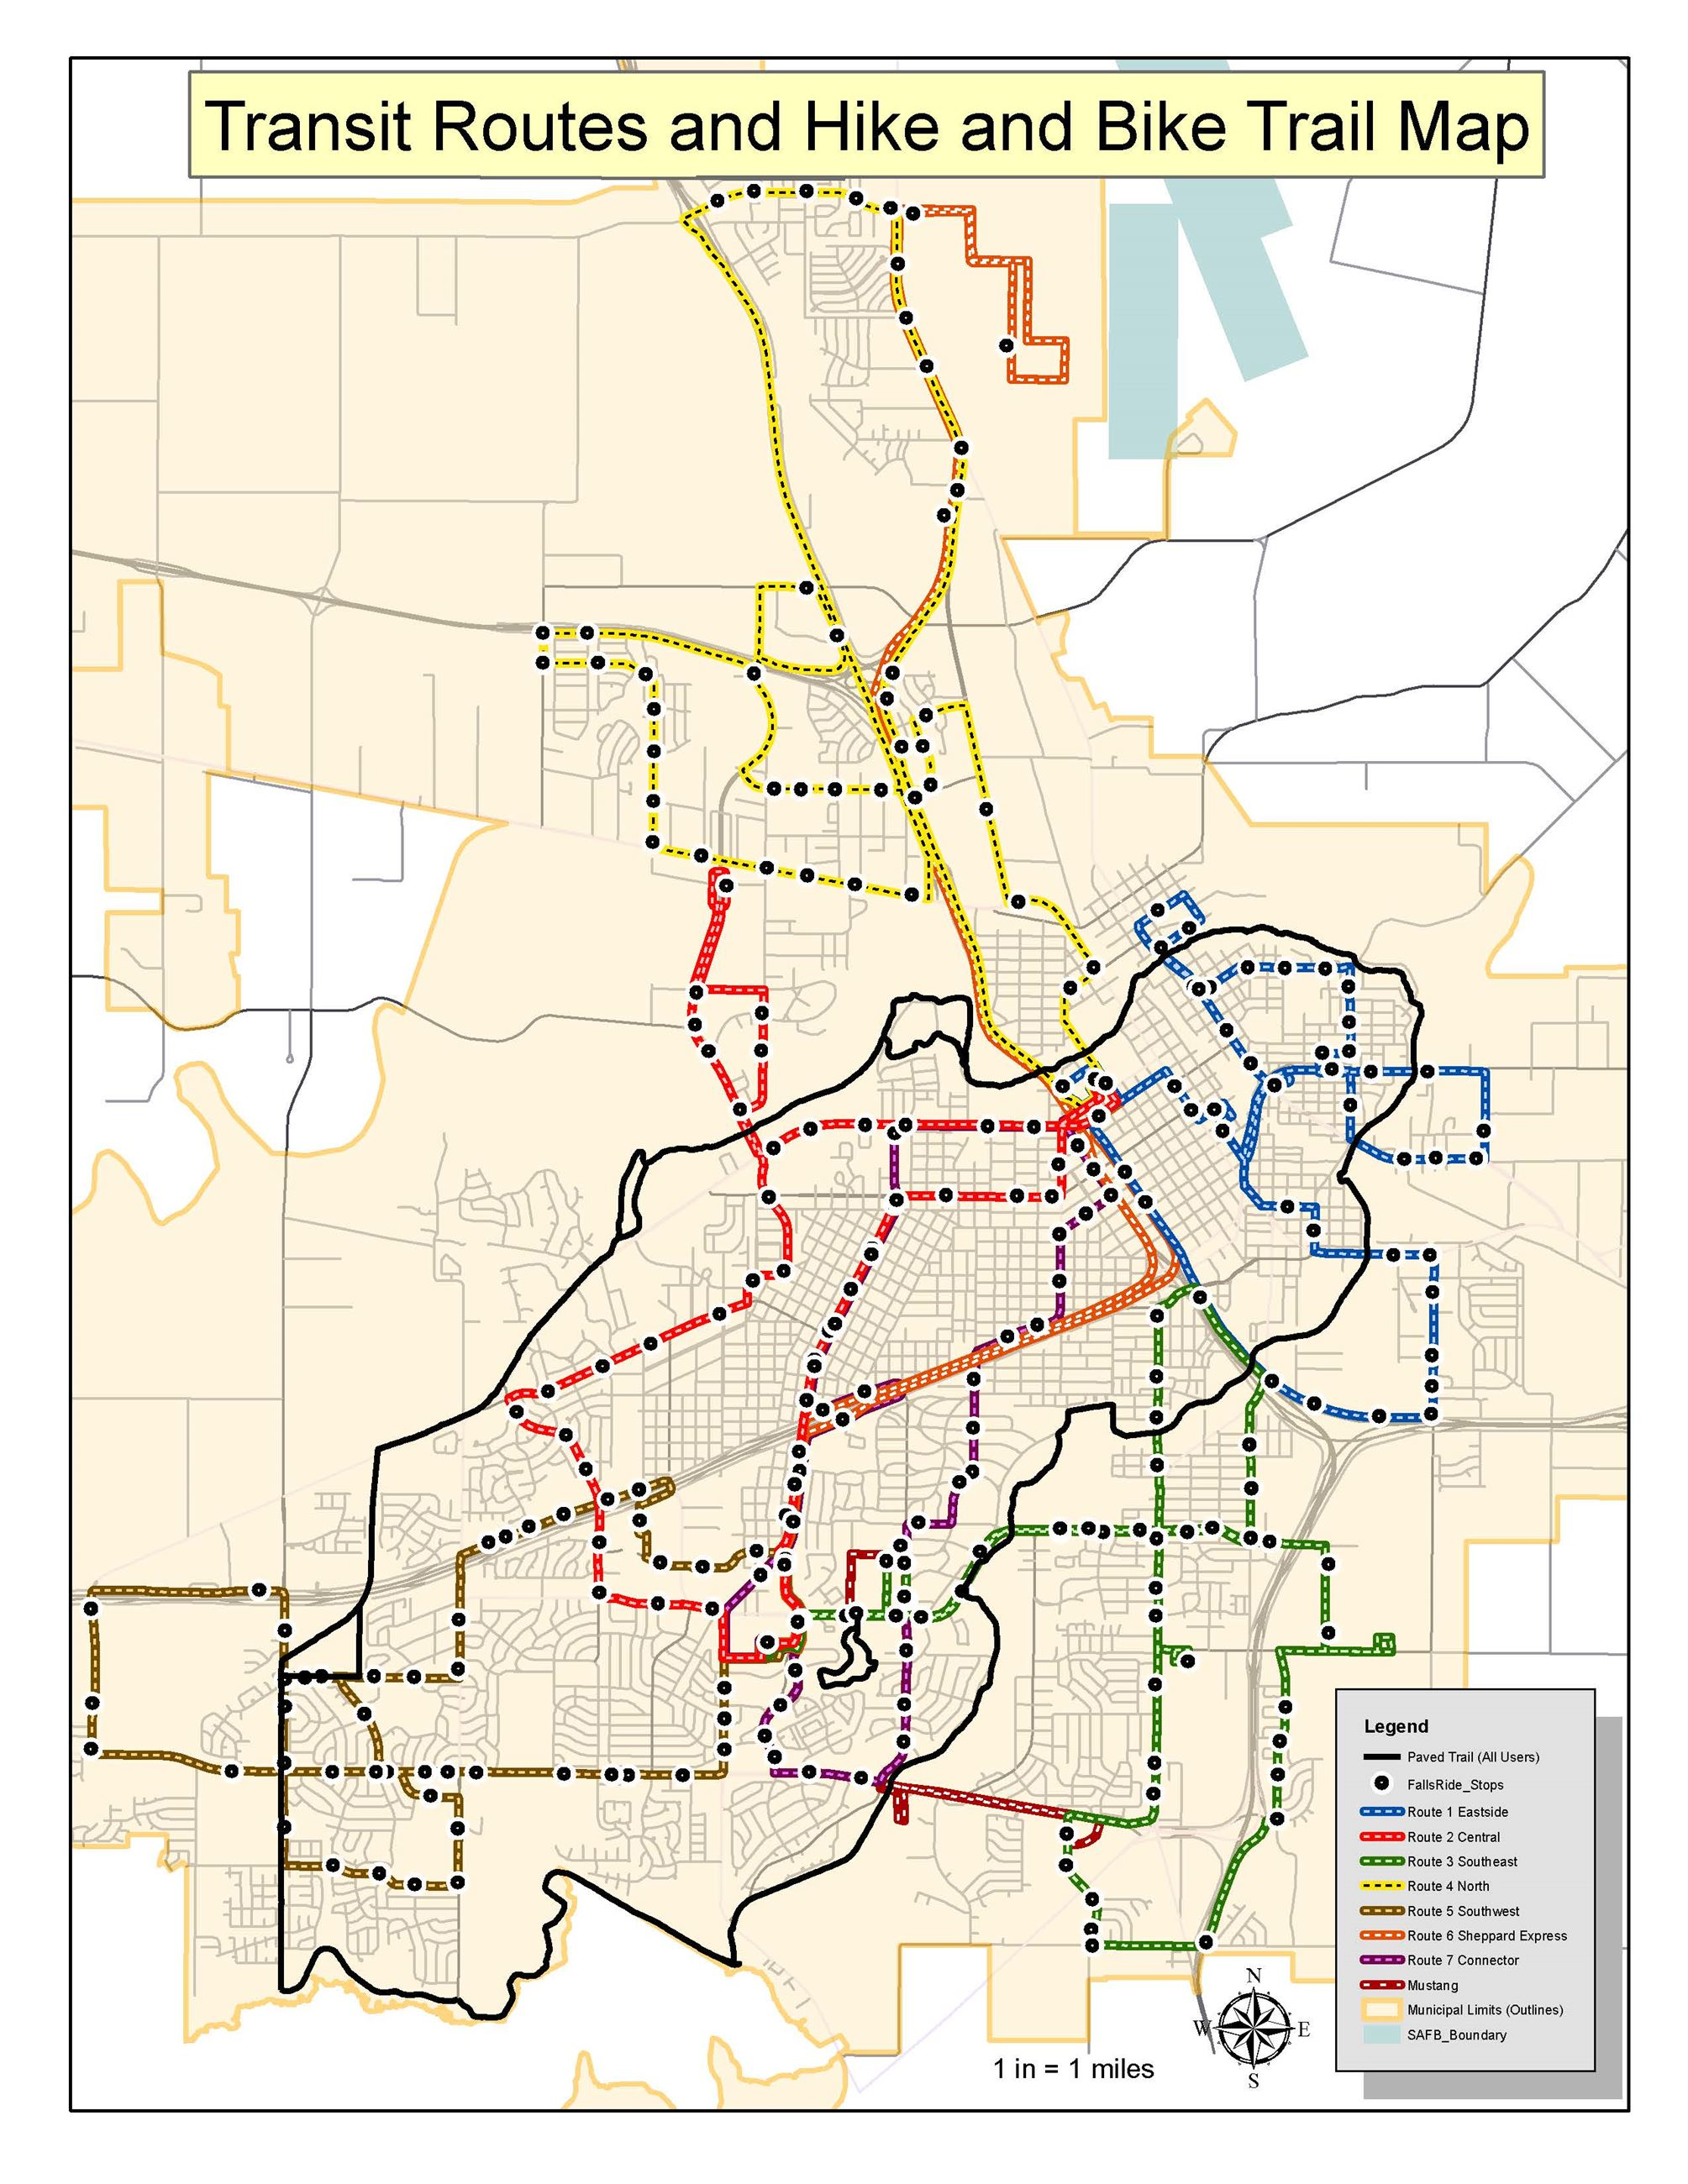 Hike and Bike with Transit Route Map